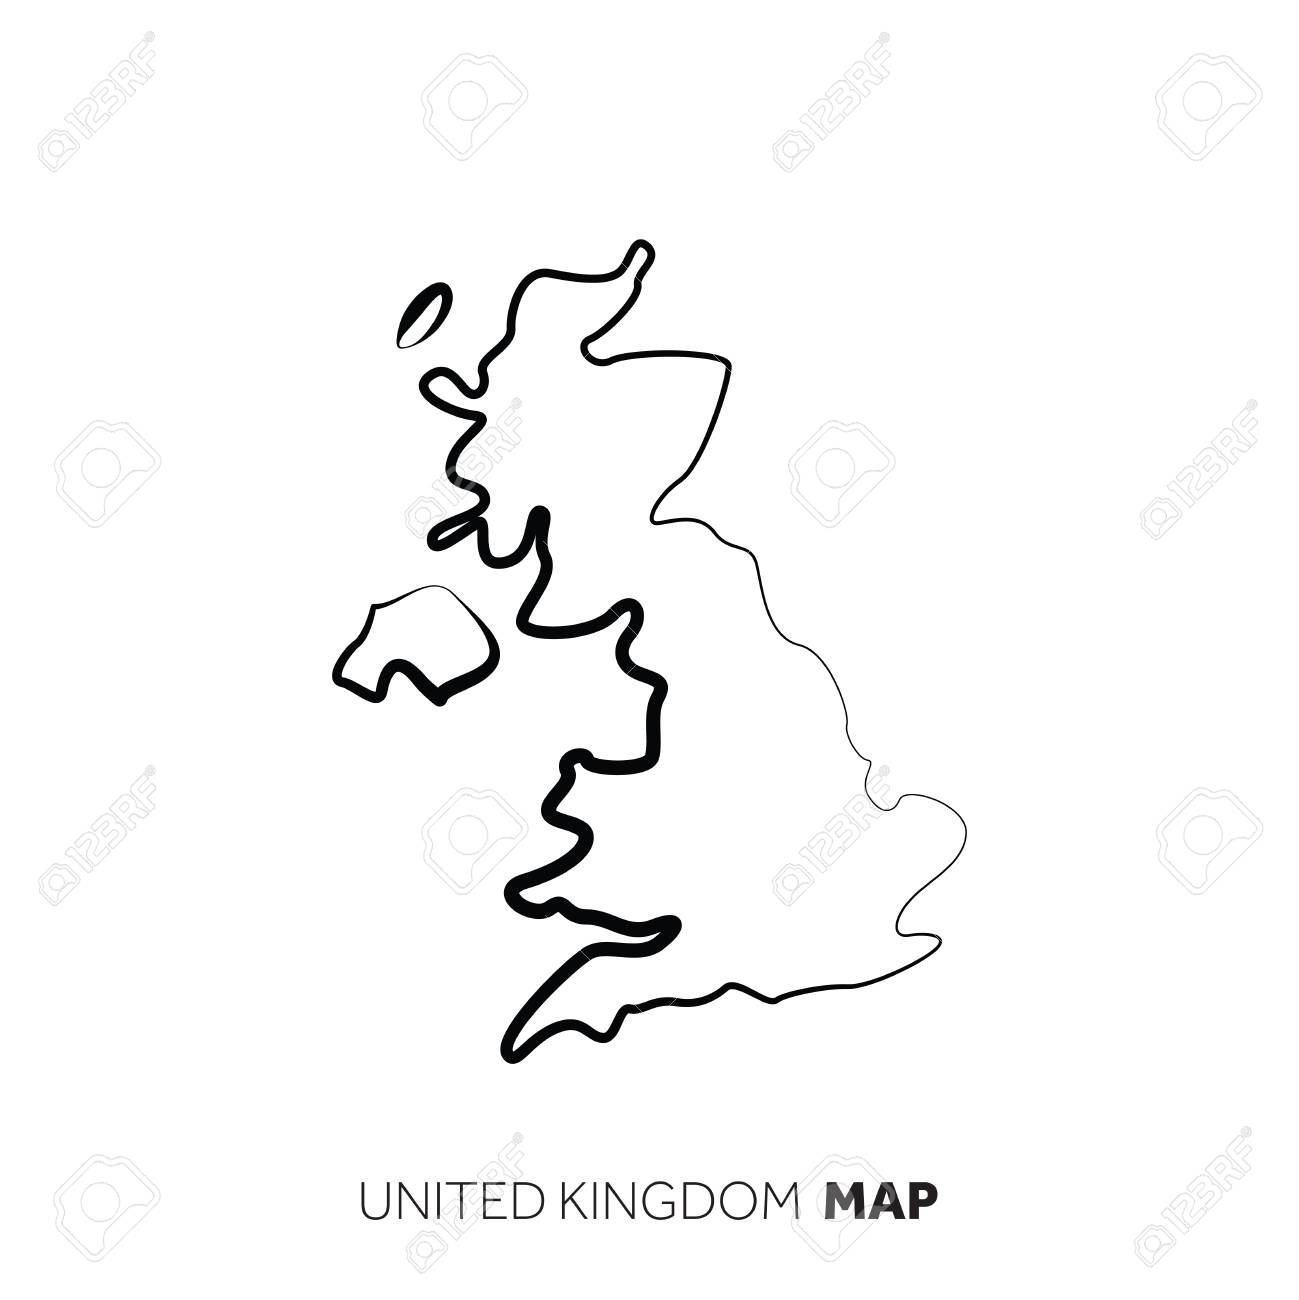 Map Of Uk Black And White.United Kingdom Vector Country Map Outline Black Line On White